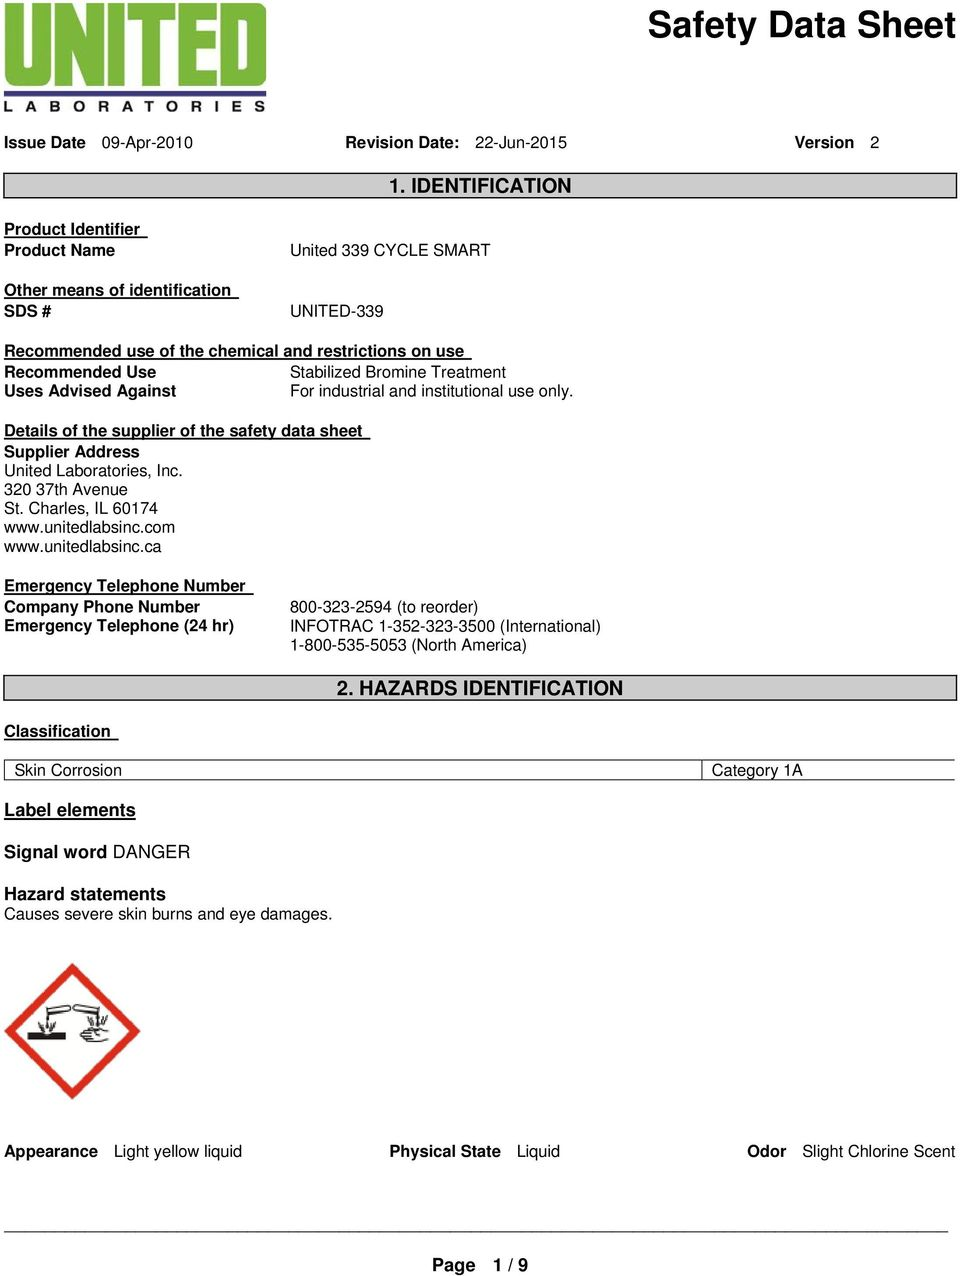 Bromine Treatment Uses Advised Against For industrial and institutional use only. Details of the supplier of the safety data sheet Supplier Address United Laboratories, Inc. 320 37th Avenue St.